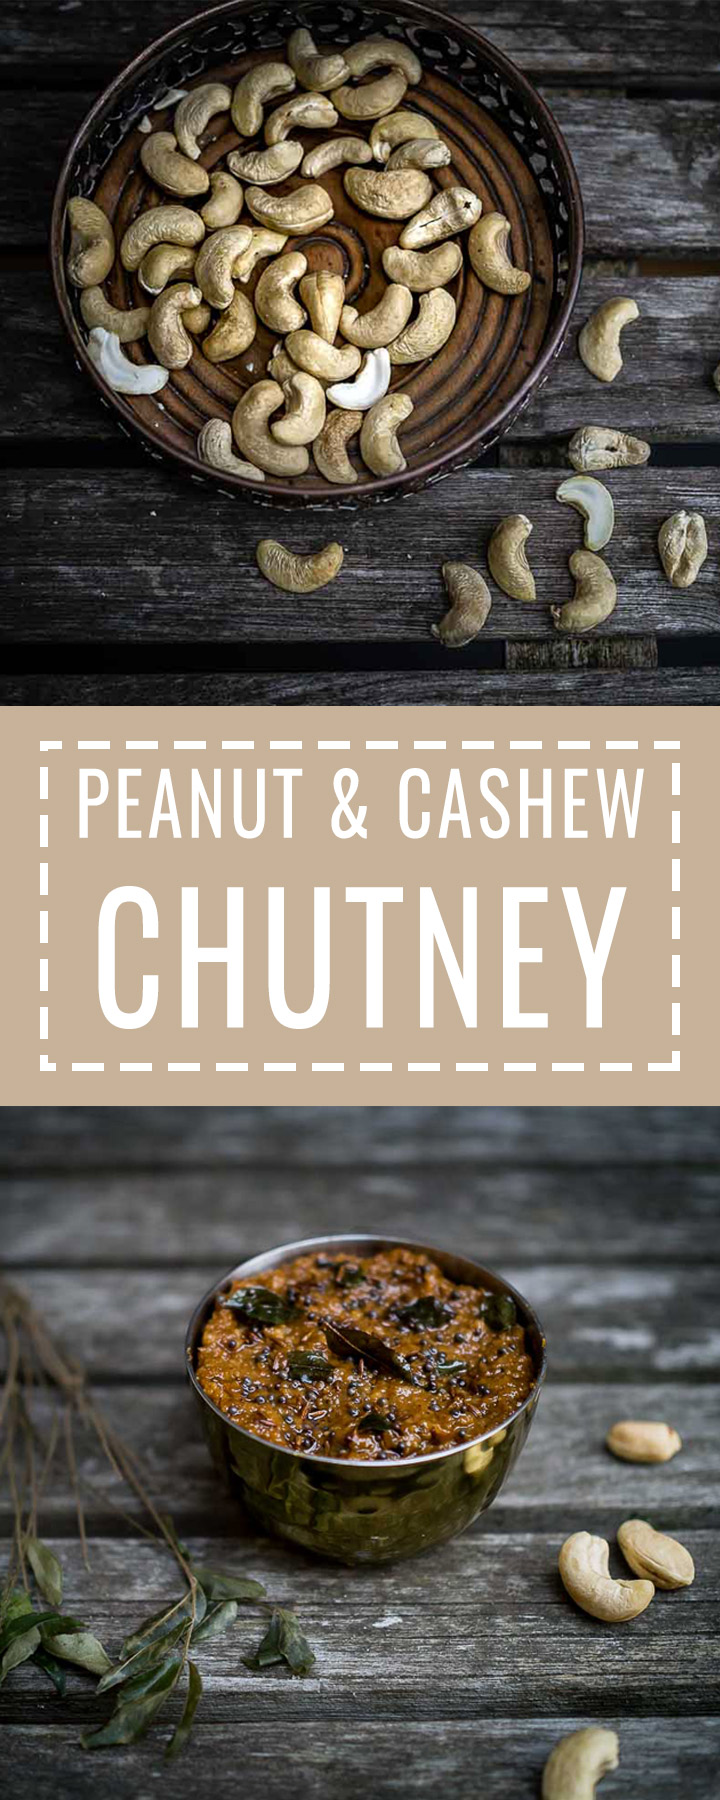 Peanut and Cashew Chutney | Vegan | www.discoverdelicious.org